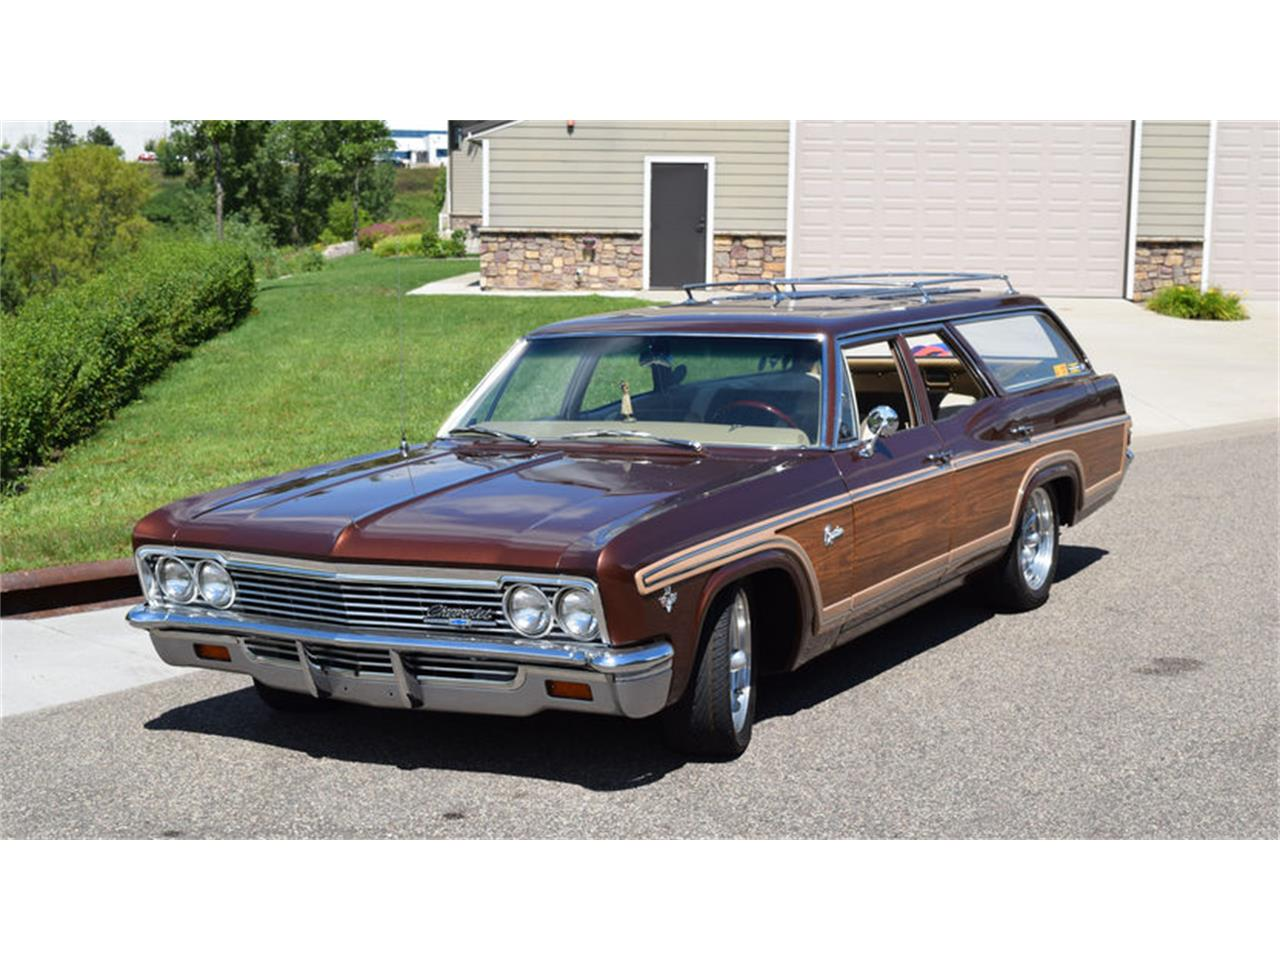 1966 Chevrolet Caprice For Sale Cc 893416 Chevy Large Picture Of 66 J5d4